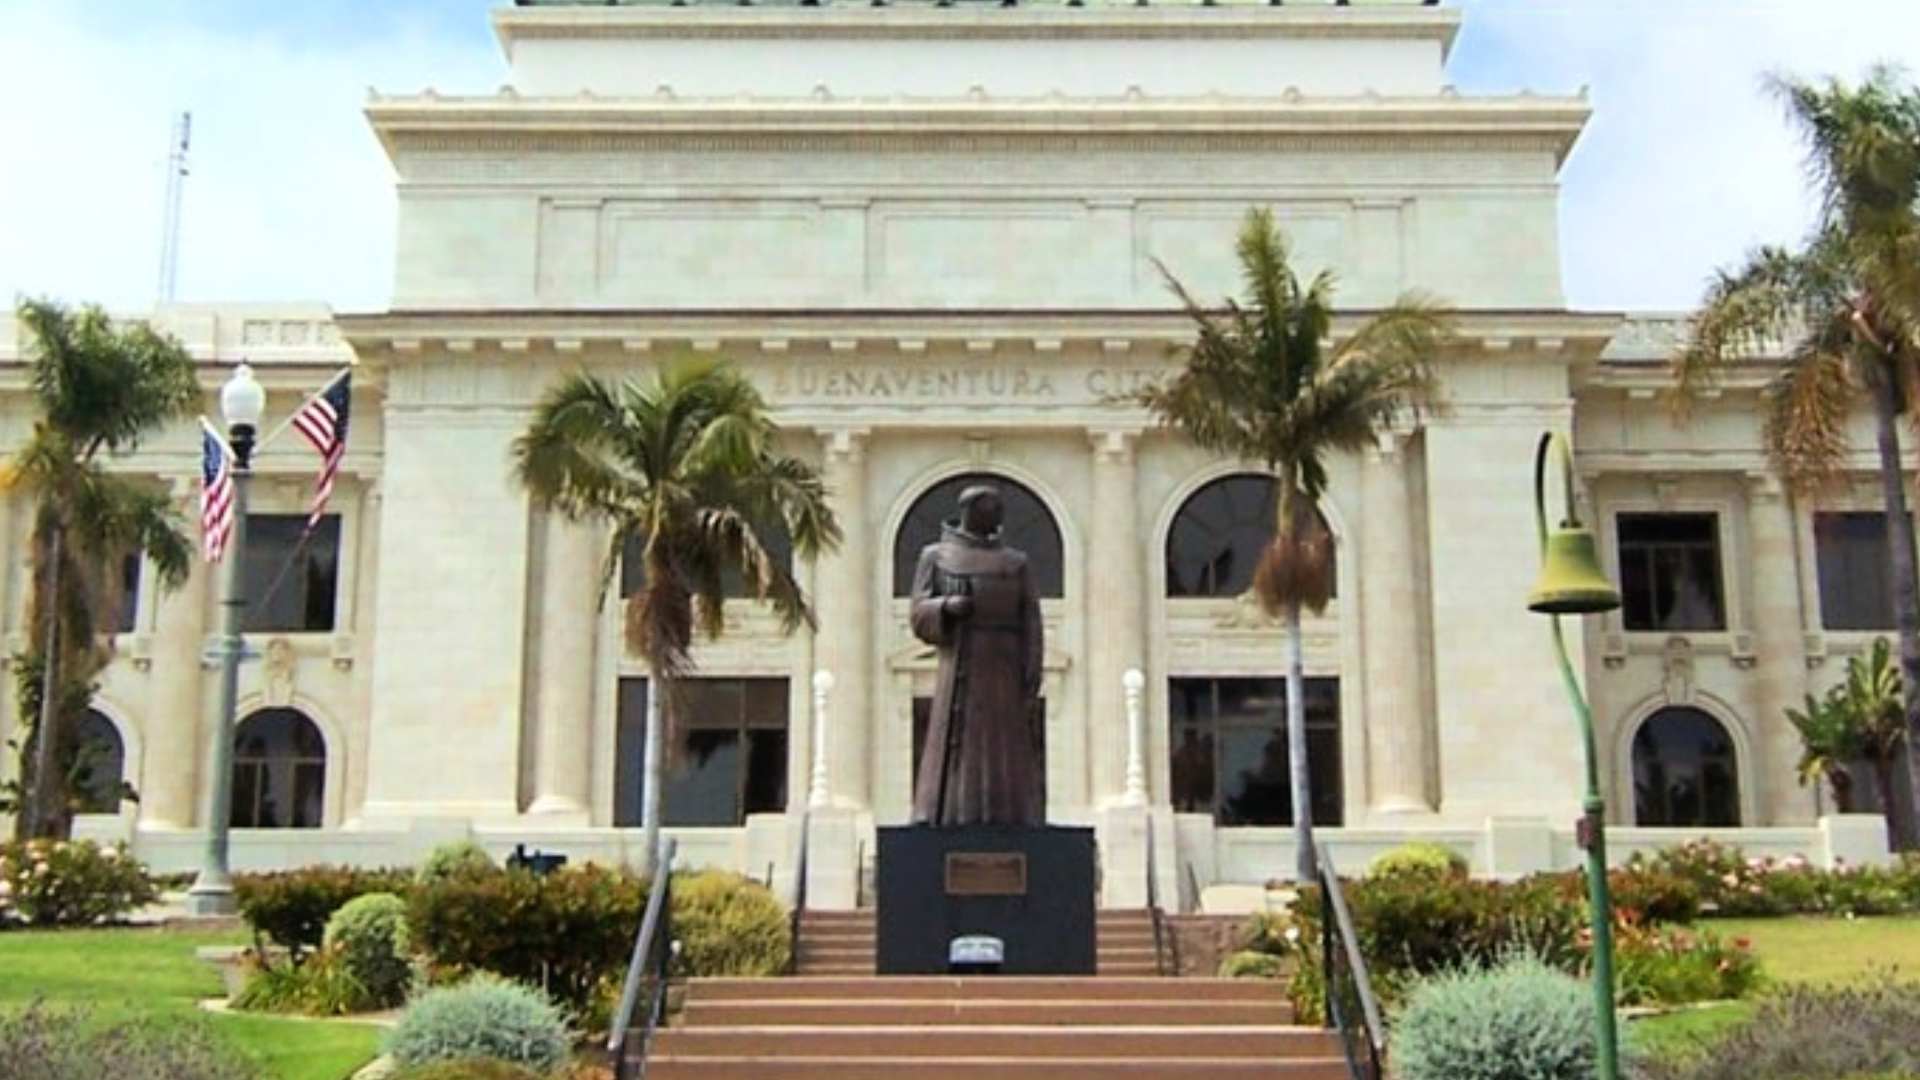 The statue of Junipero Serra is seen in front of Ventura City Hall in this undated photo shared by the city. Junipero Serra's mission system in California was responsible for the destruction of several tribes, often through the introduction of foreign diseases. Tribes that did survive, such as the Chumash, still suffered greatly and were often forced into building the missions.